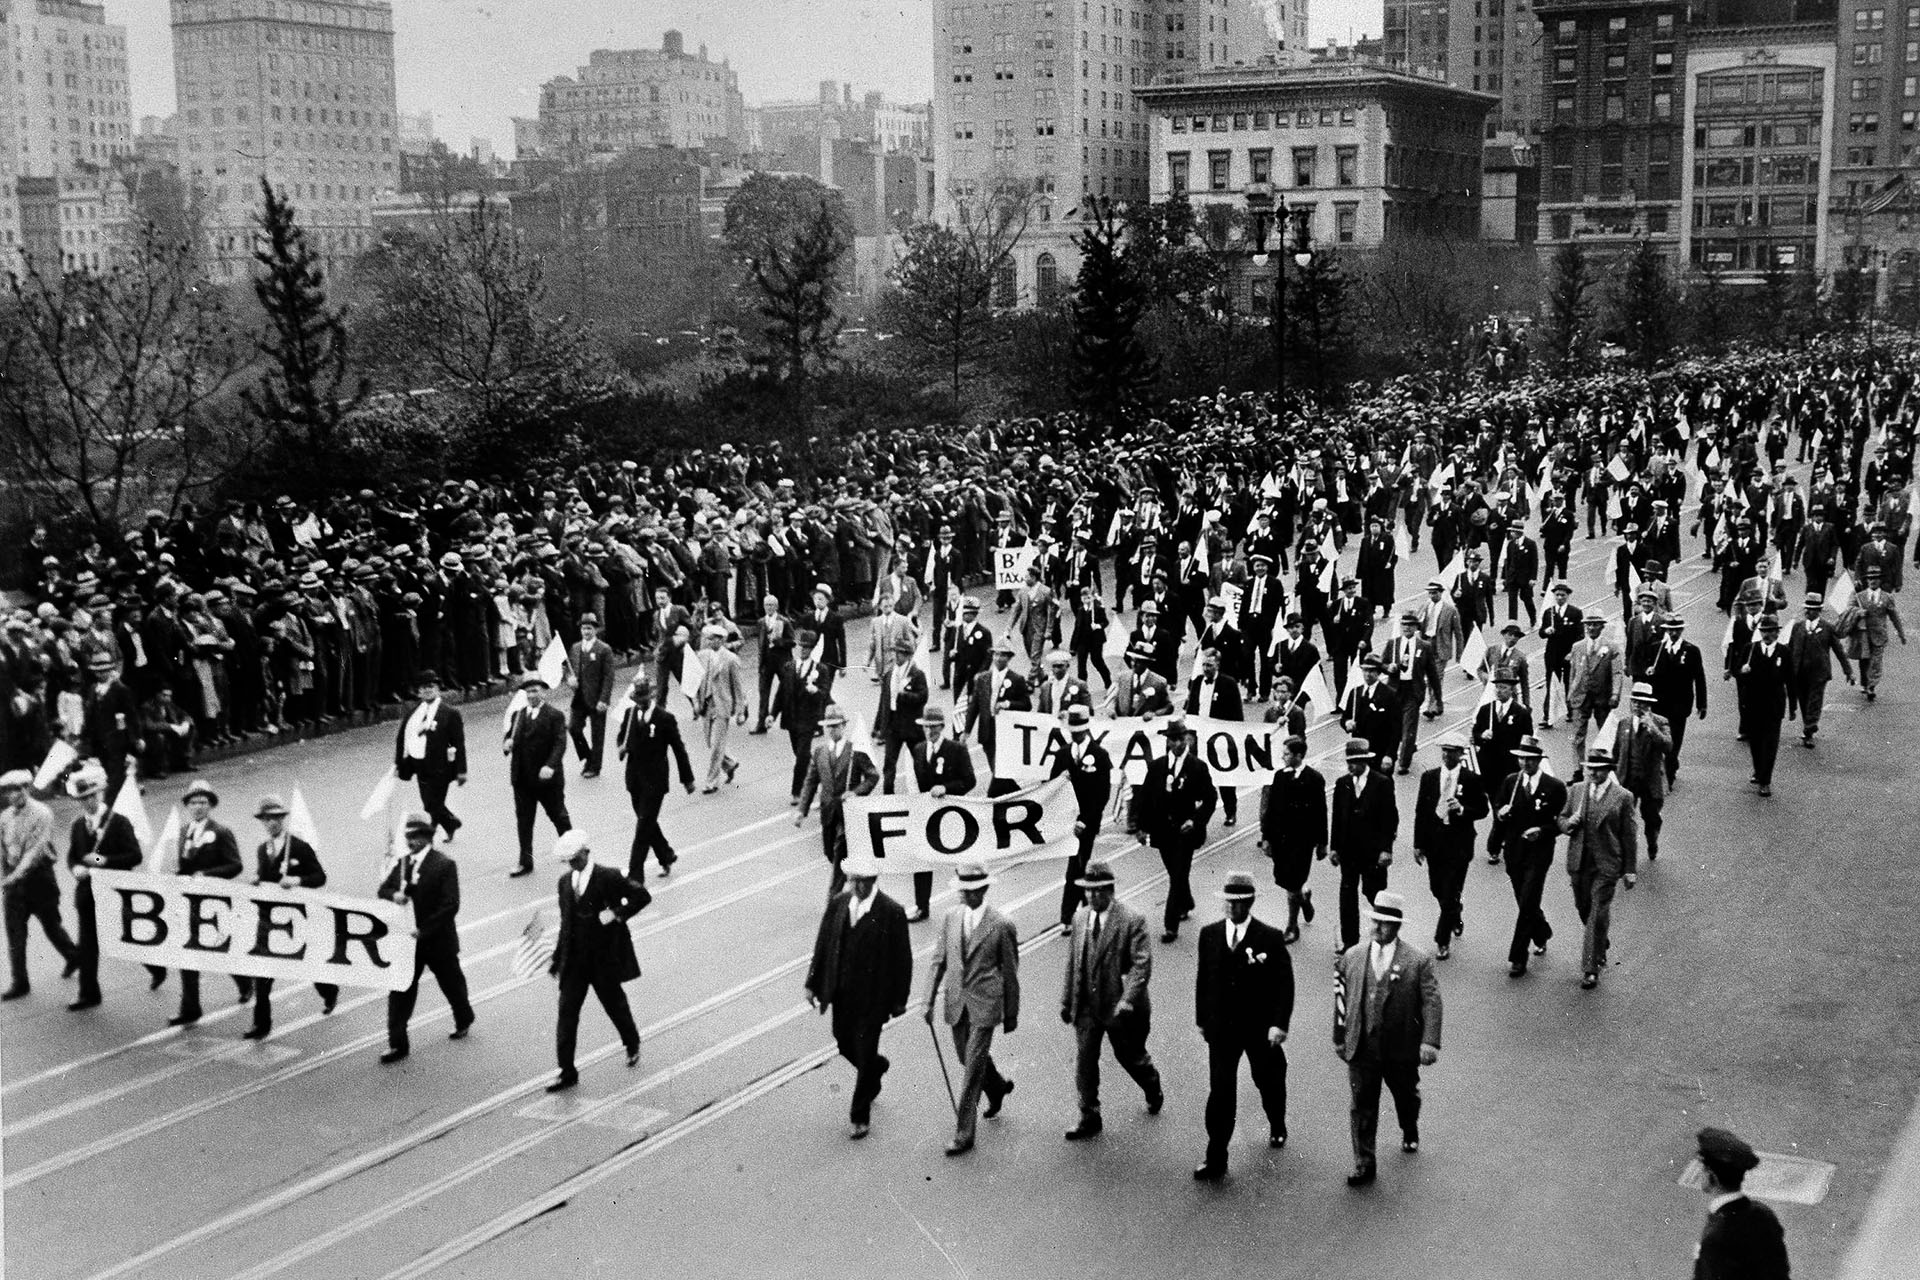 Prohibition rally in NYC